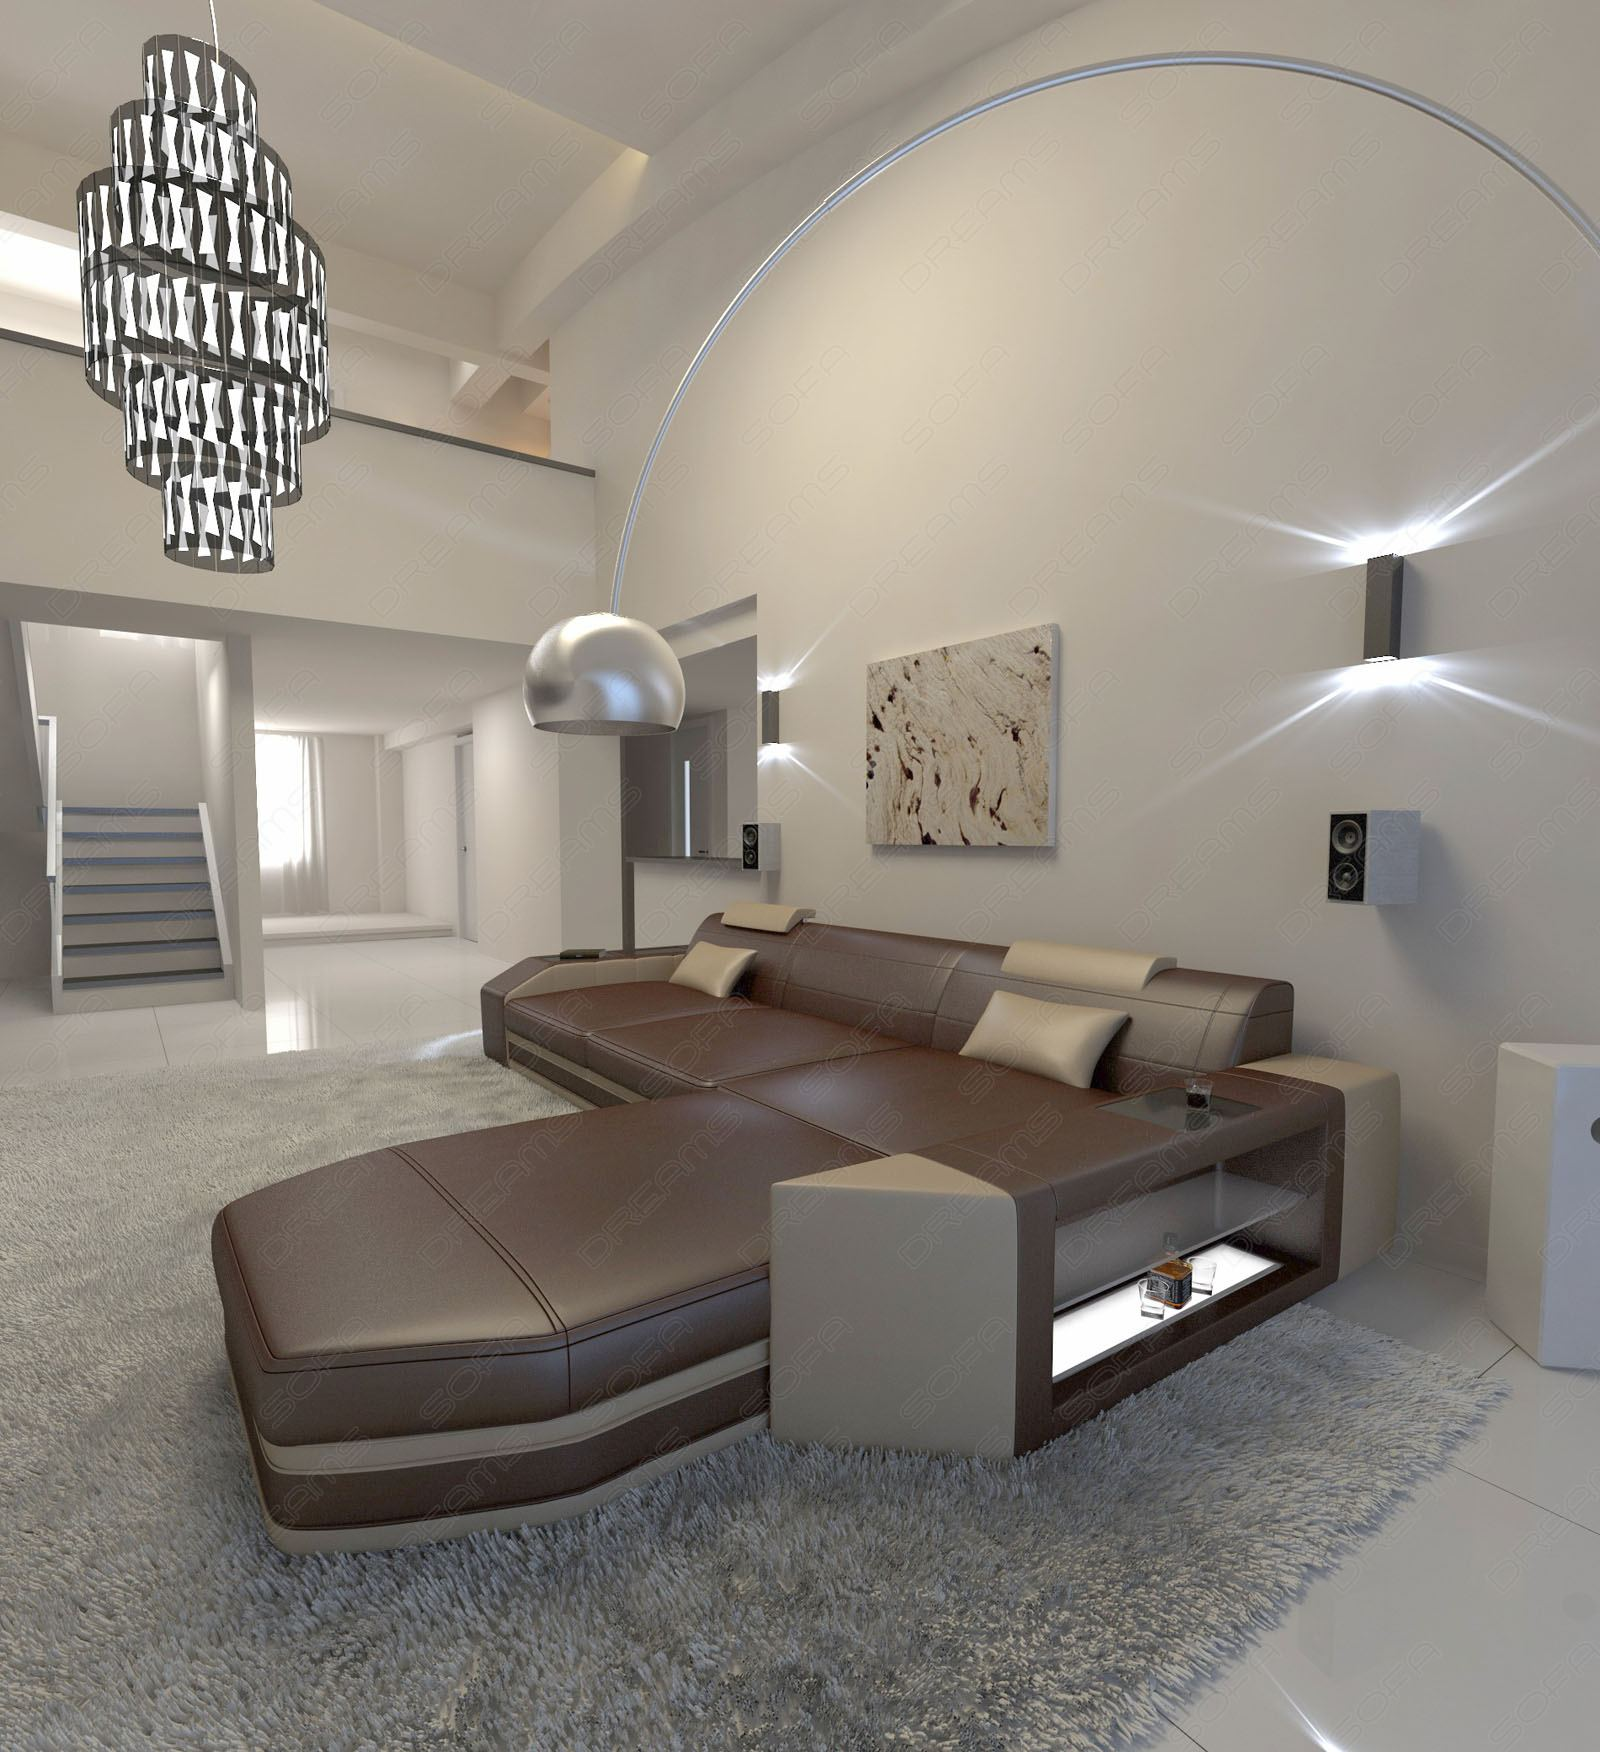 ecksofa design couch wohnlandschaft prato l form mit led beleuchtung ledercouch ebay. Black Bedroom Furniture Sets. Home Design Ideas